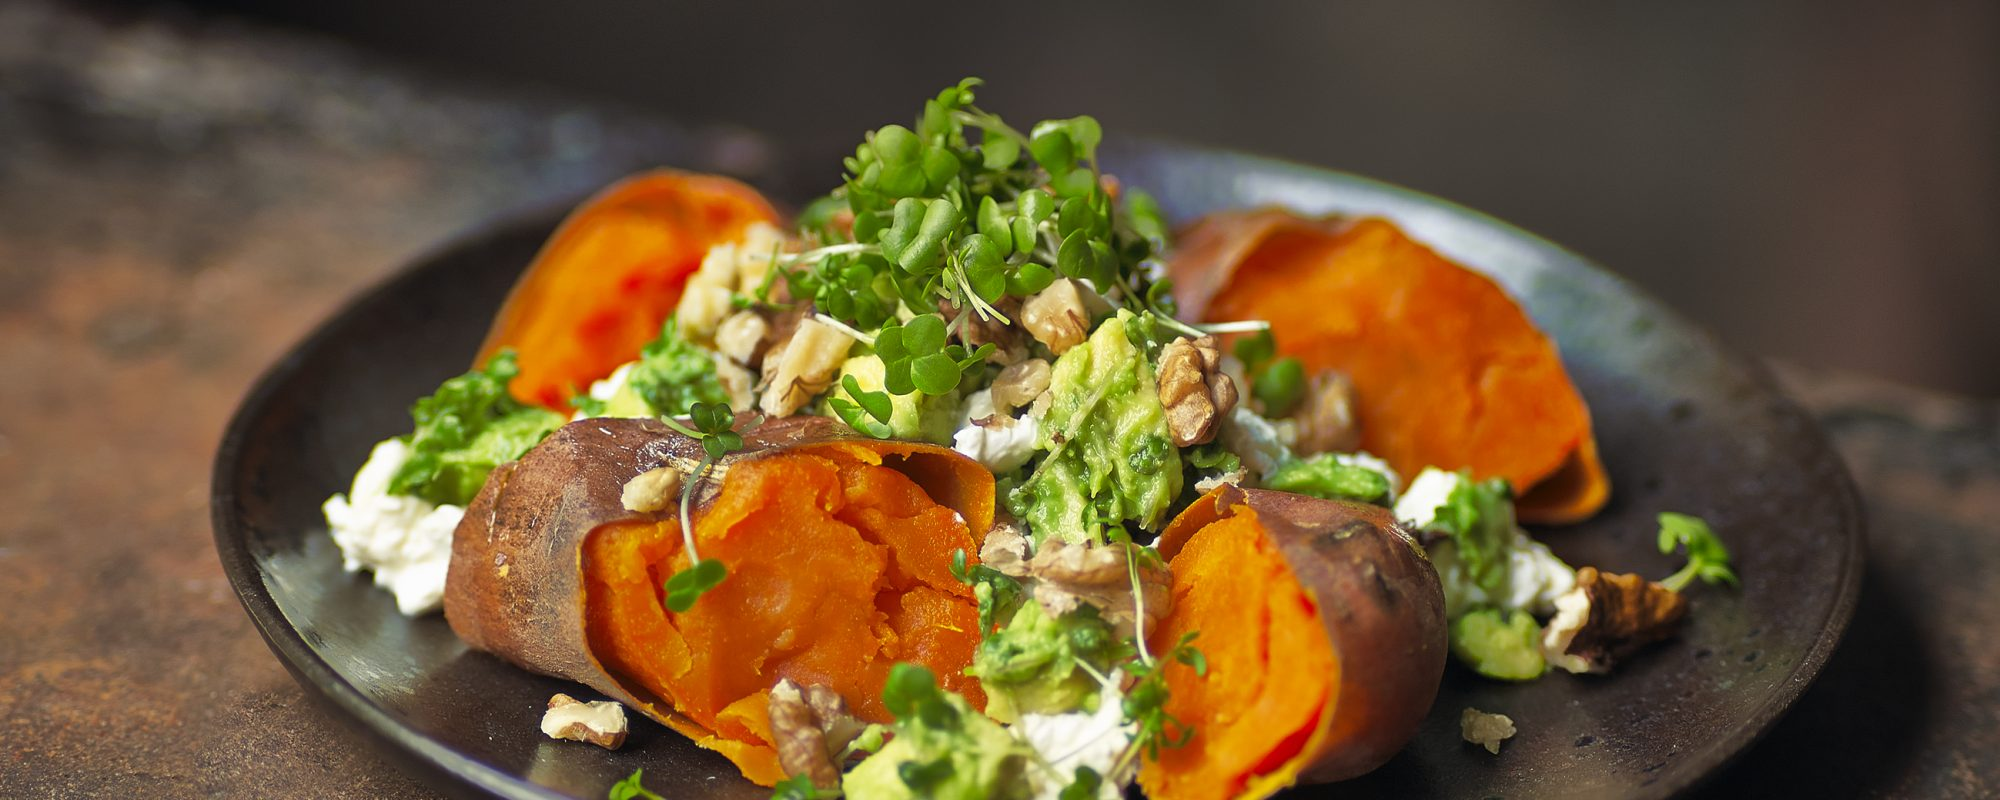 Baked Sweet Potato with Salad Cress, Cottage & Avocado